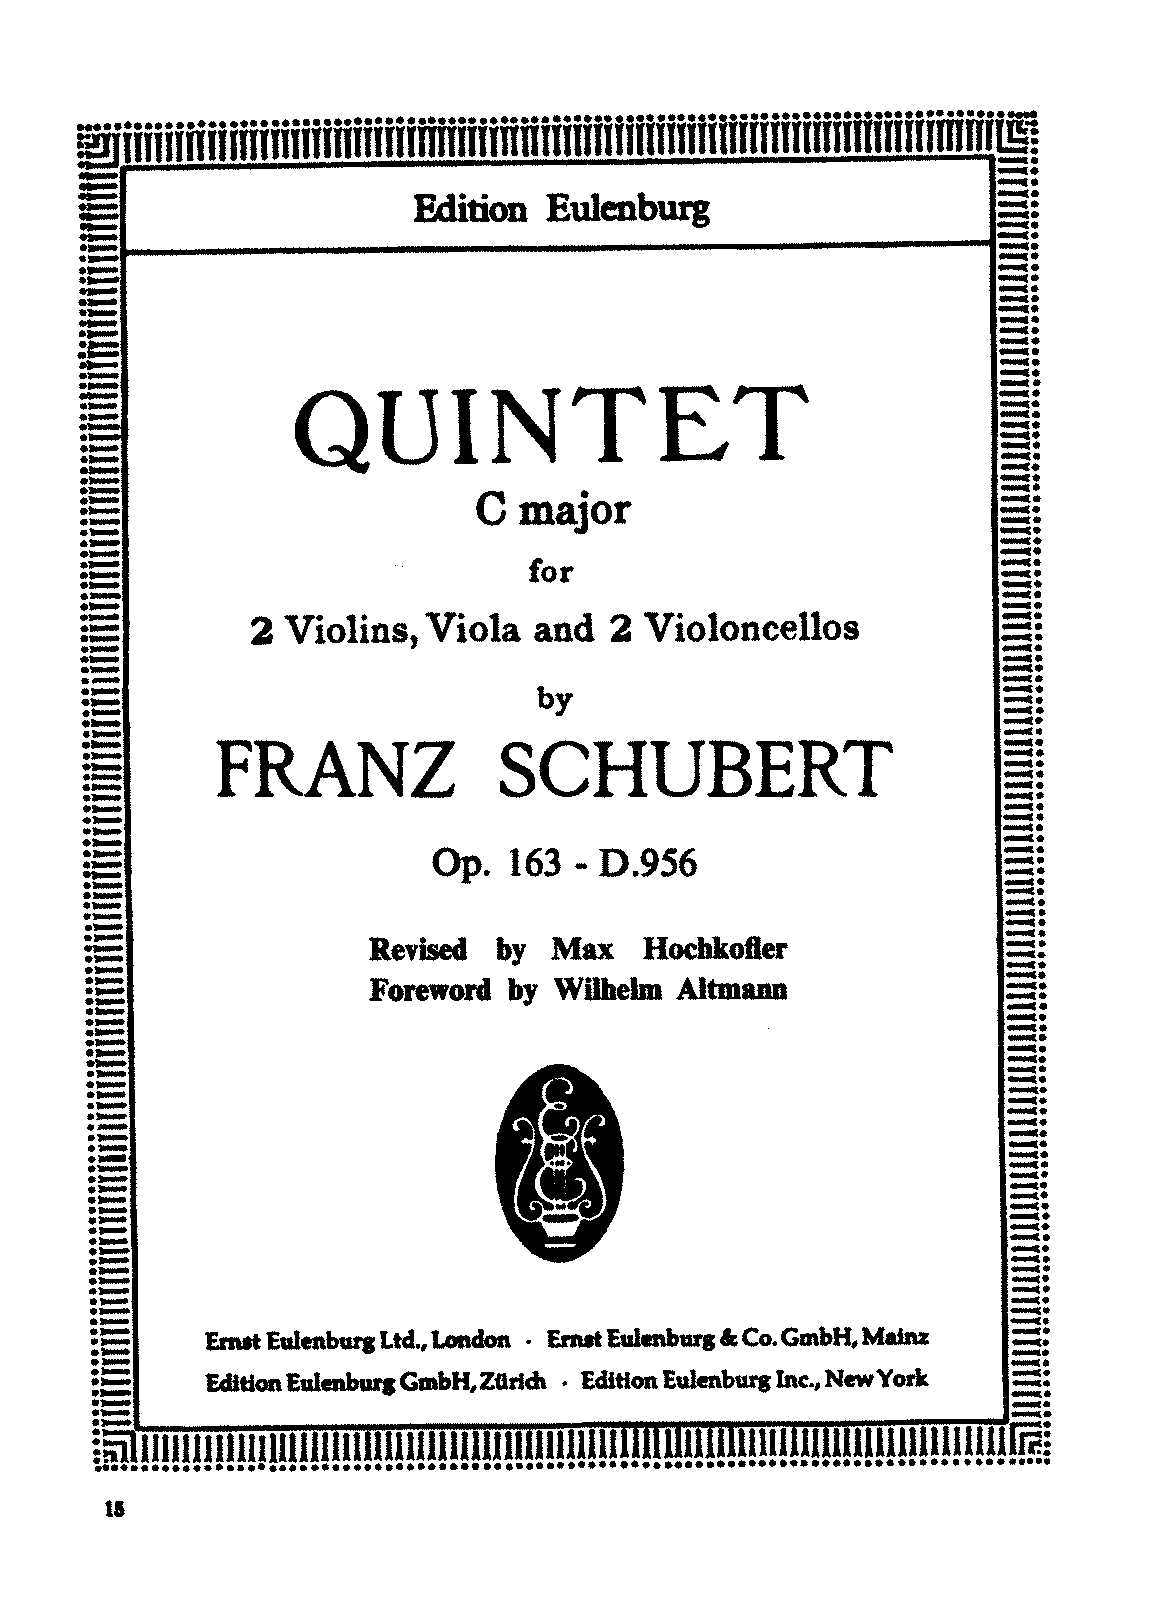 PMLP06343-Schubert - String Quintet in C Major Op163 D956 Eulenburg score.pdf